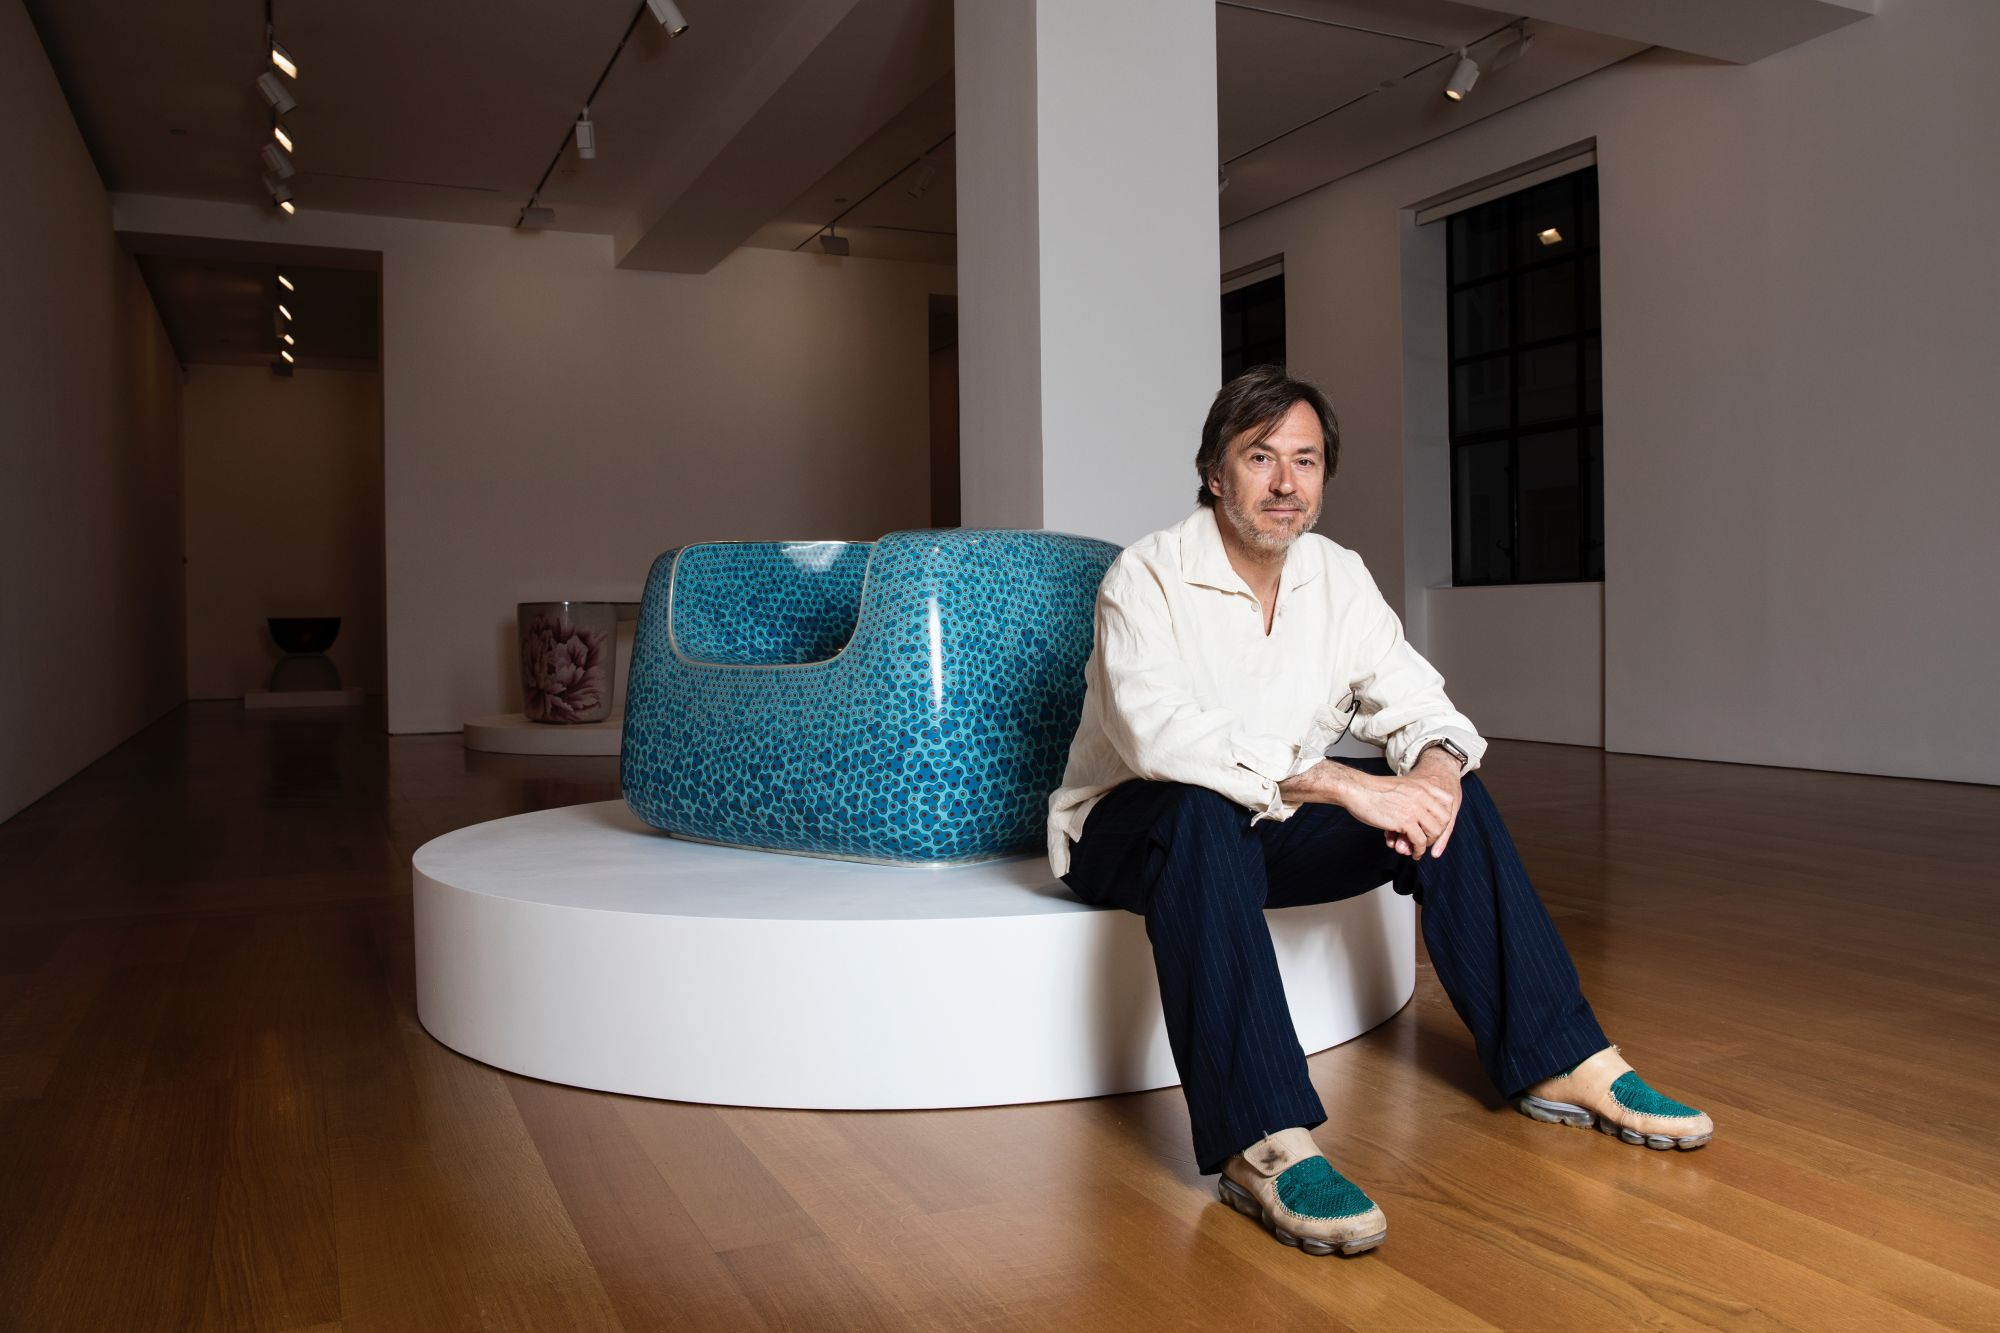 Designer Marc Newson—who is joining Jony Ive's new studio, LoveFrom—discusses his exhibition in Hong Kong